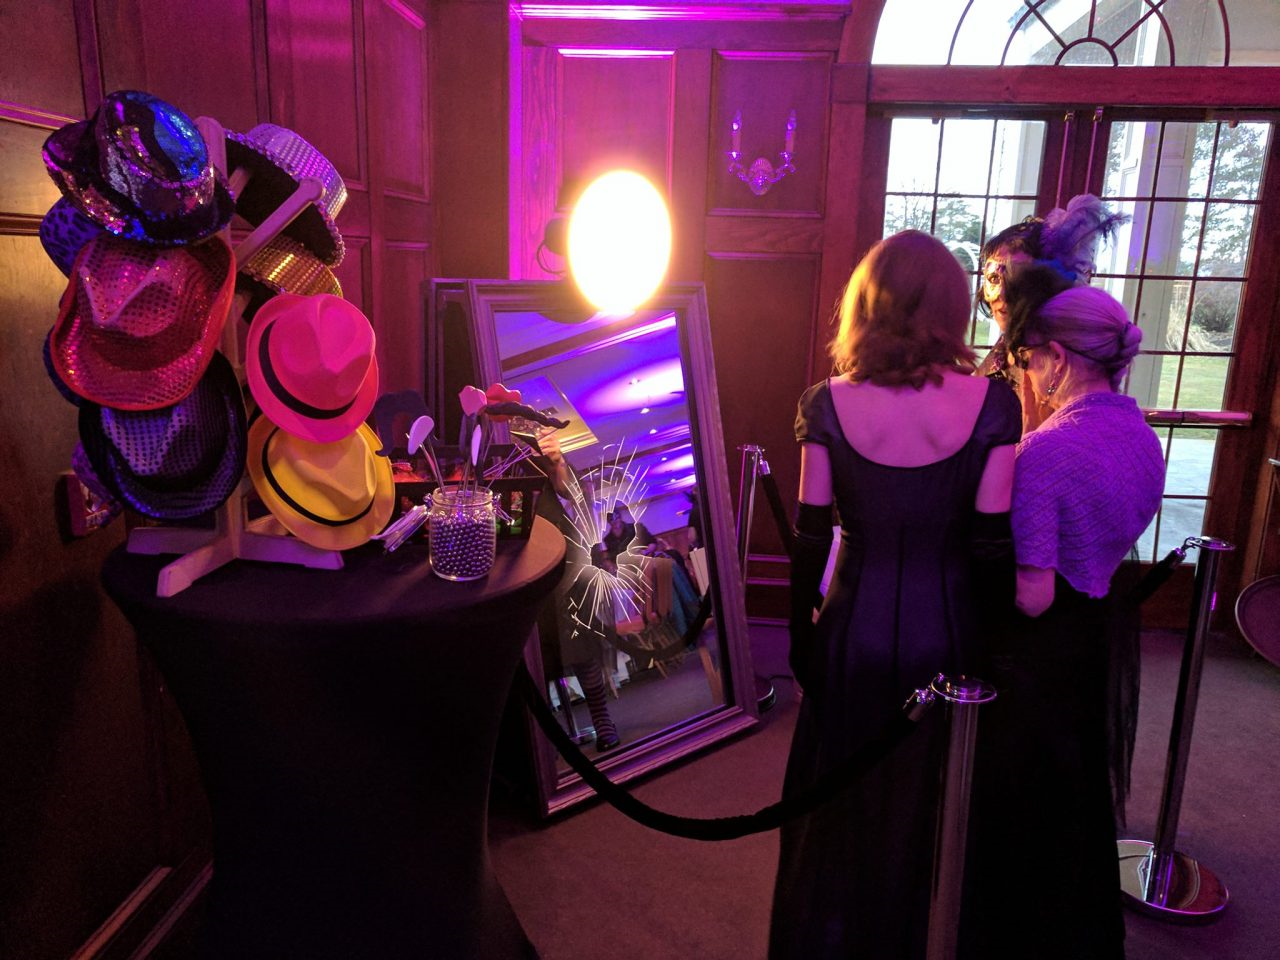 Mirror Booth Rental At Corporate Event